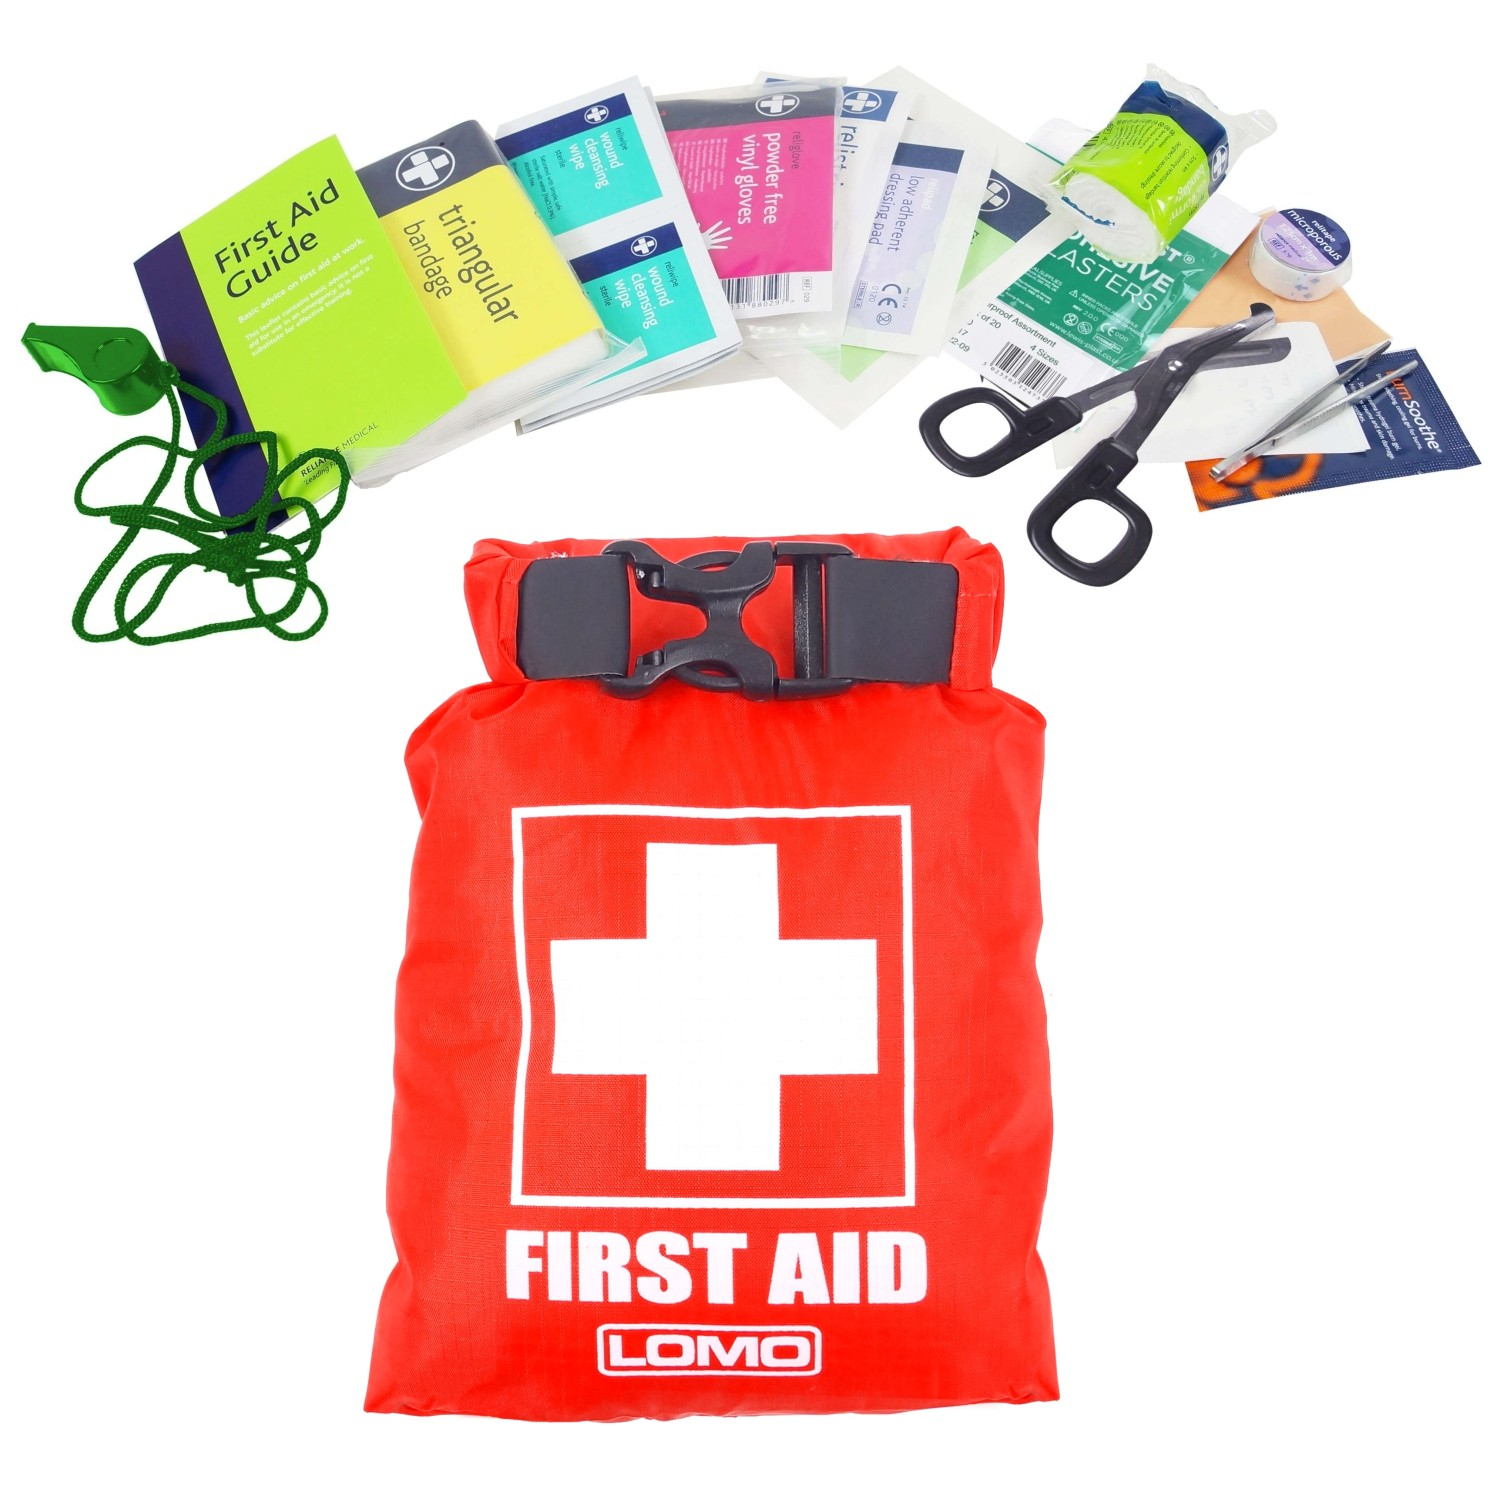 Lomo Dry Bag First Aid Kit - With Contents